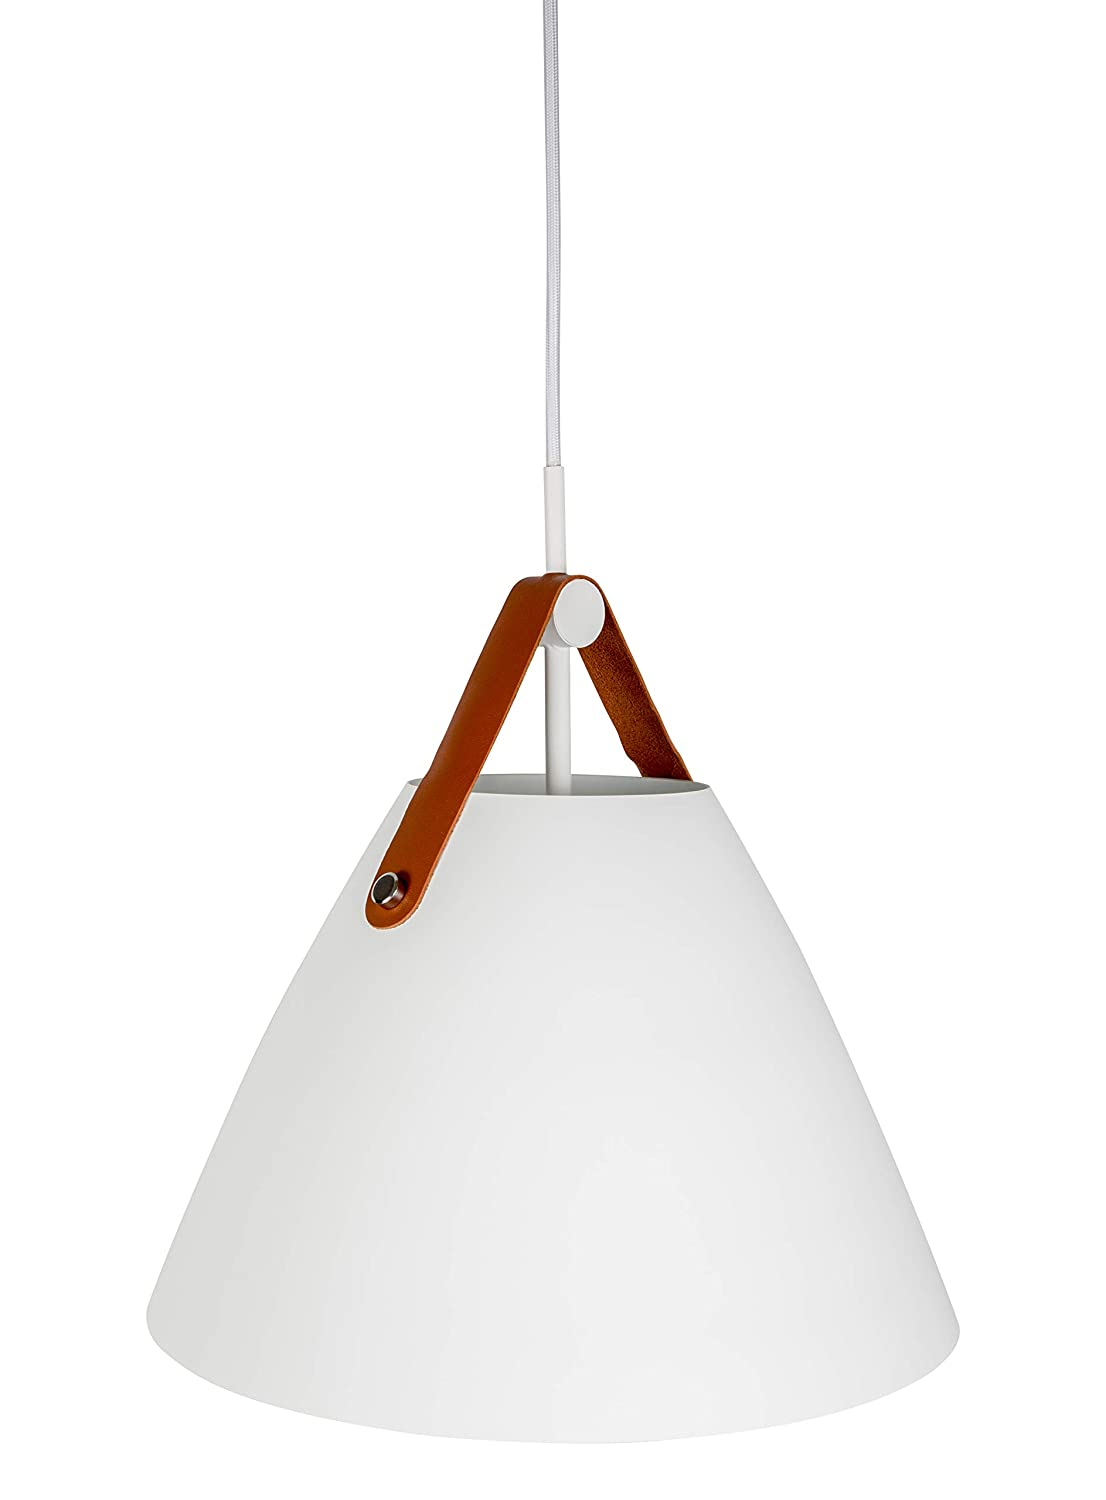 Hyperikon pendant light 14 inch white ceiling light fixture iron cone with leather strap hardwired modern pendant lamp e26 one light fixture